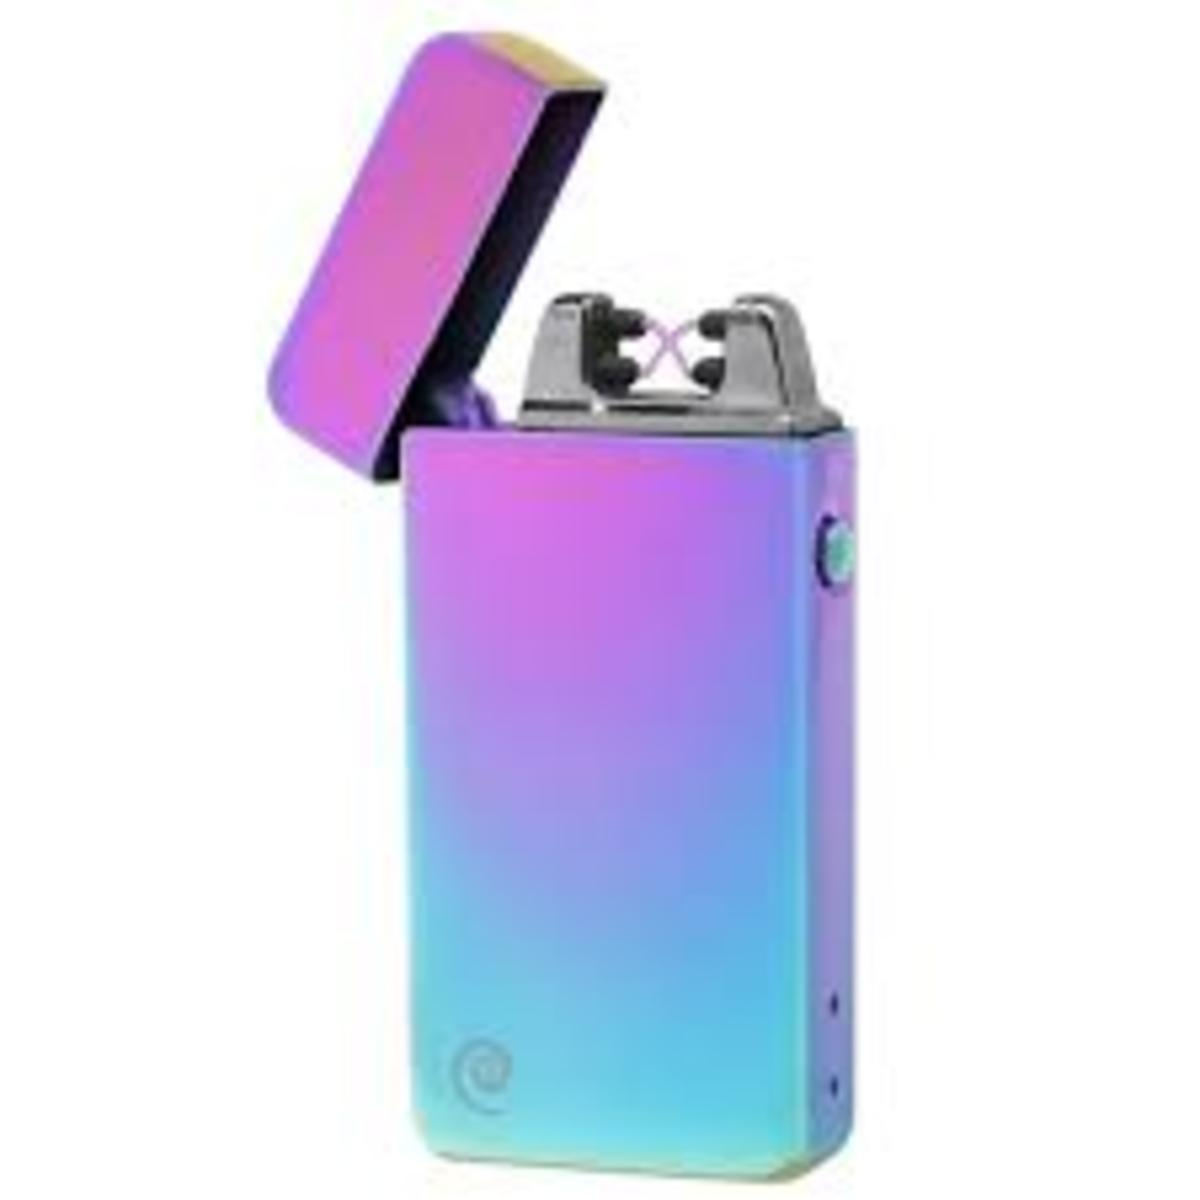 Double Arc—Lighters have been incorporated into guns, walking sticks and now, mobile/cell phones.